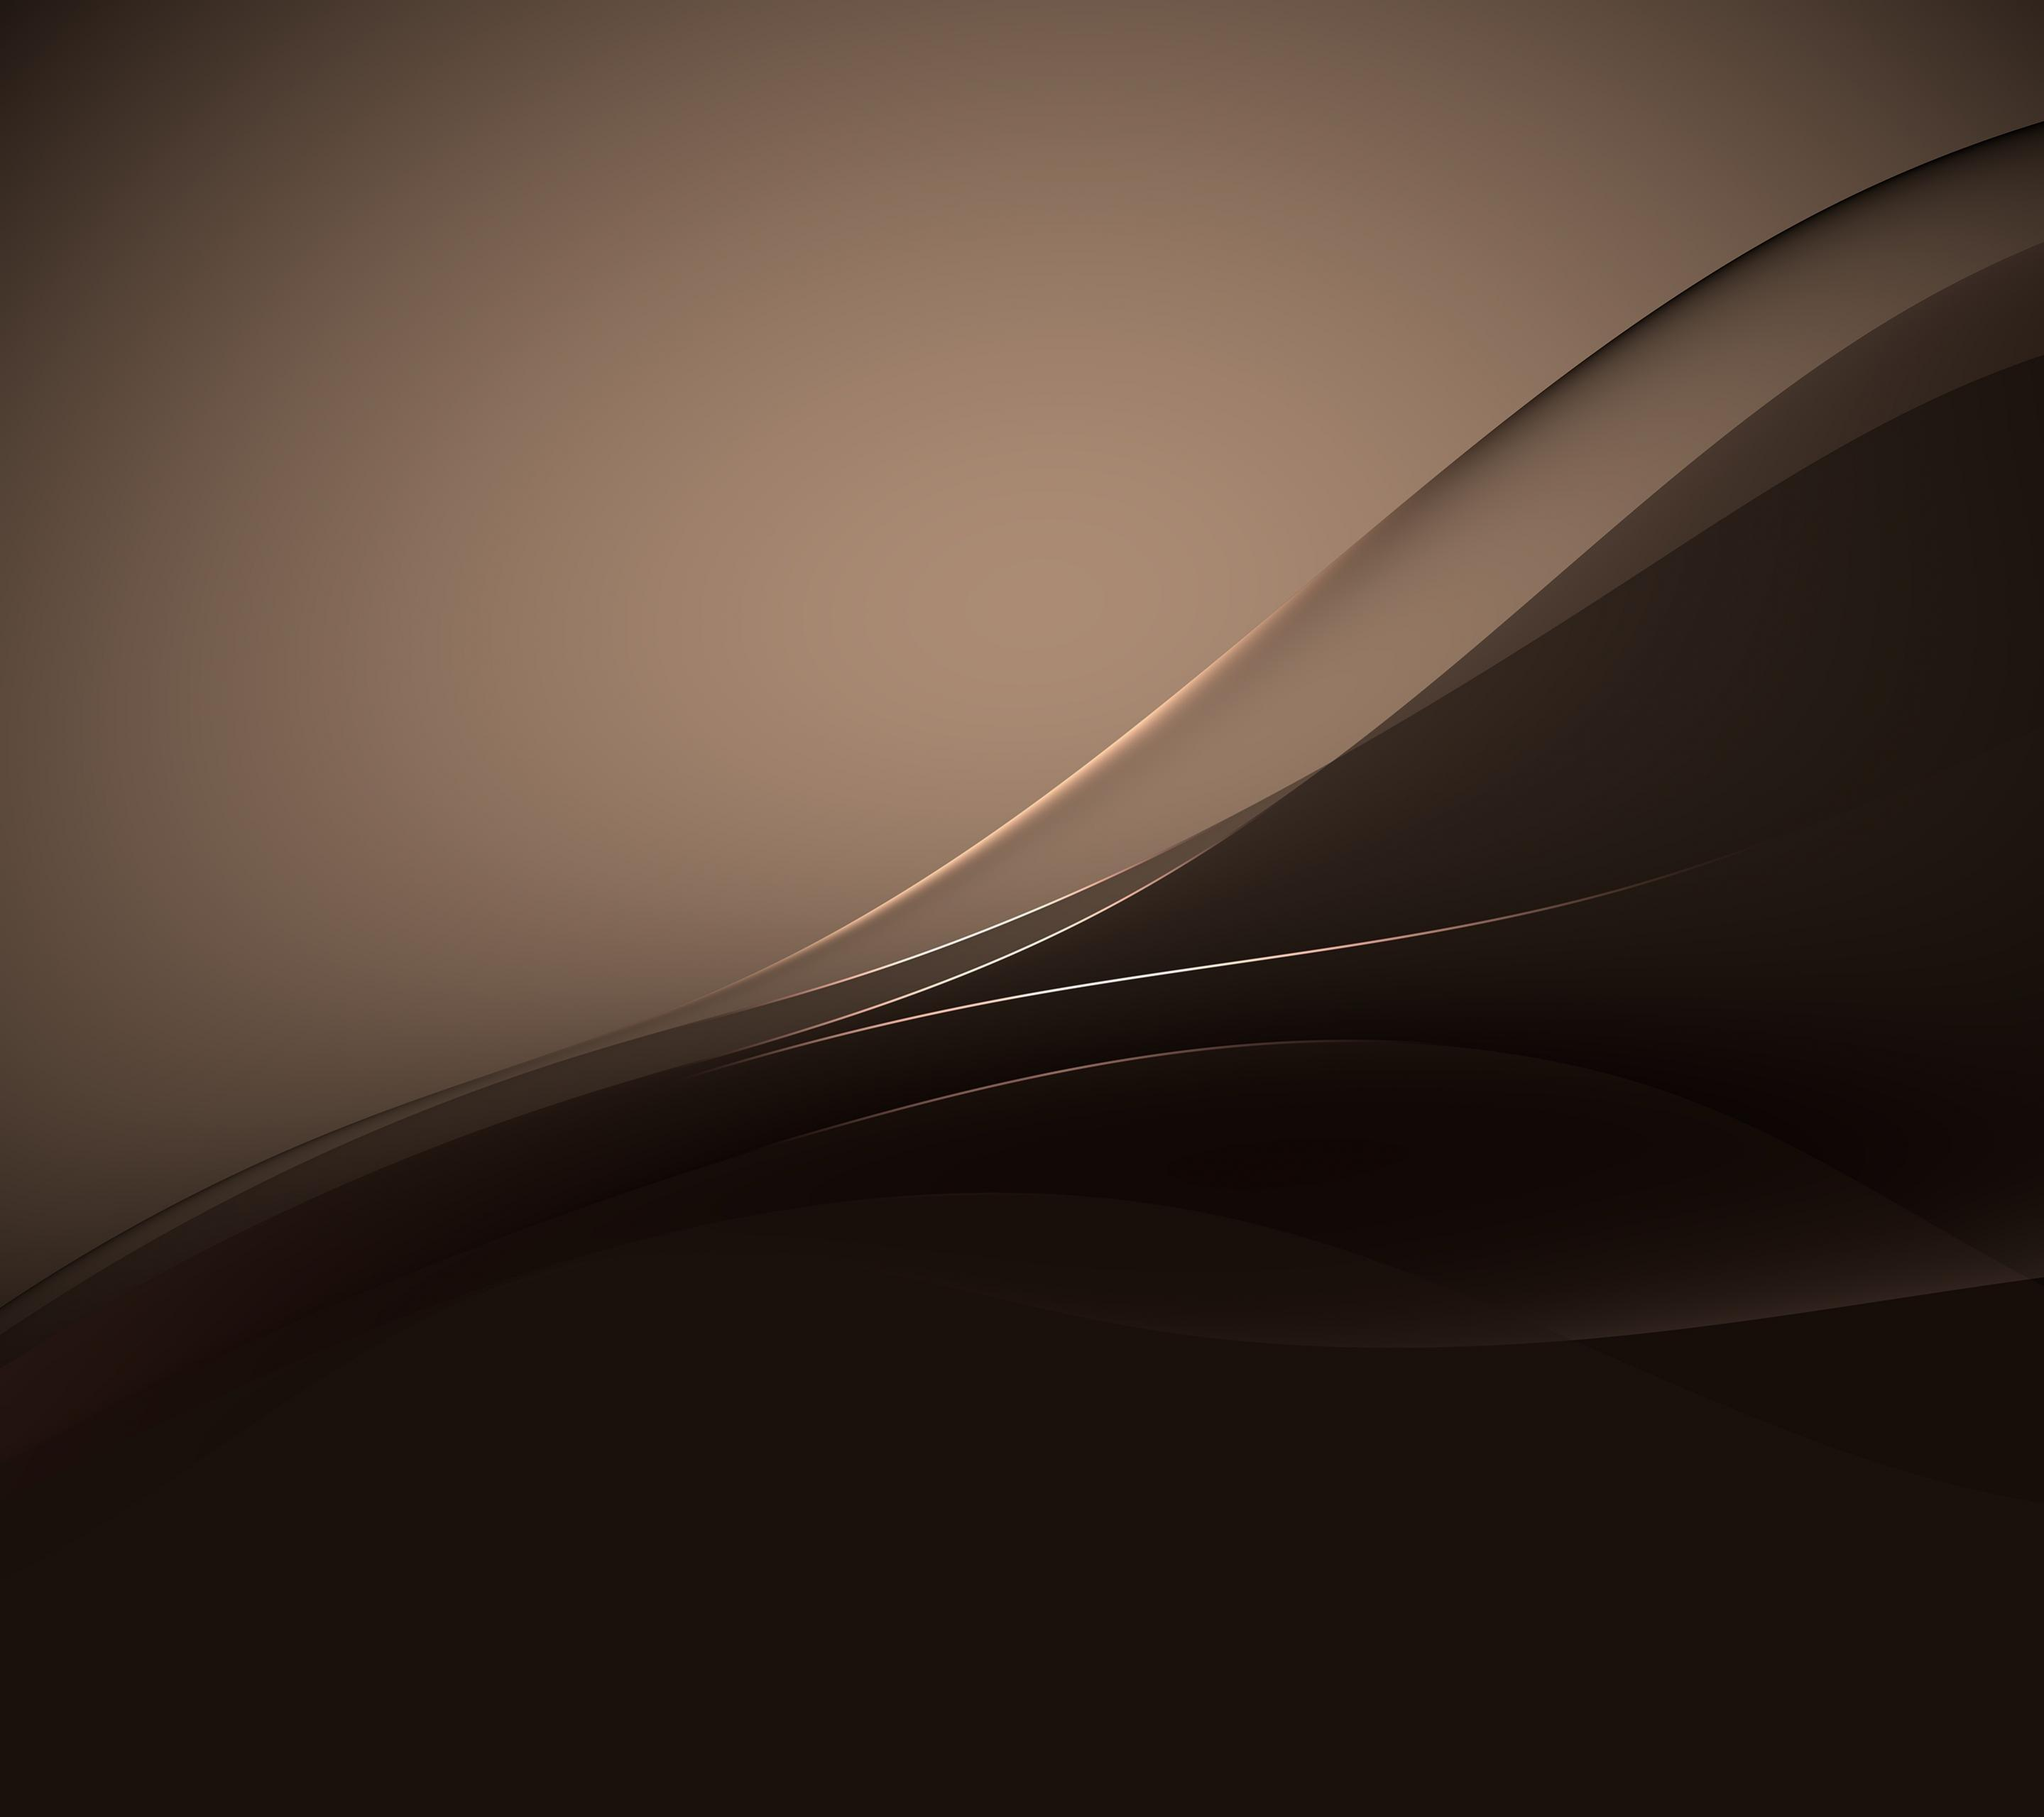 Xperia Z4 Wallpaper in Copper Color